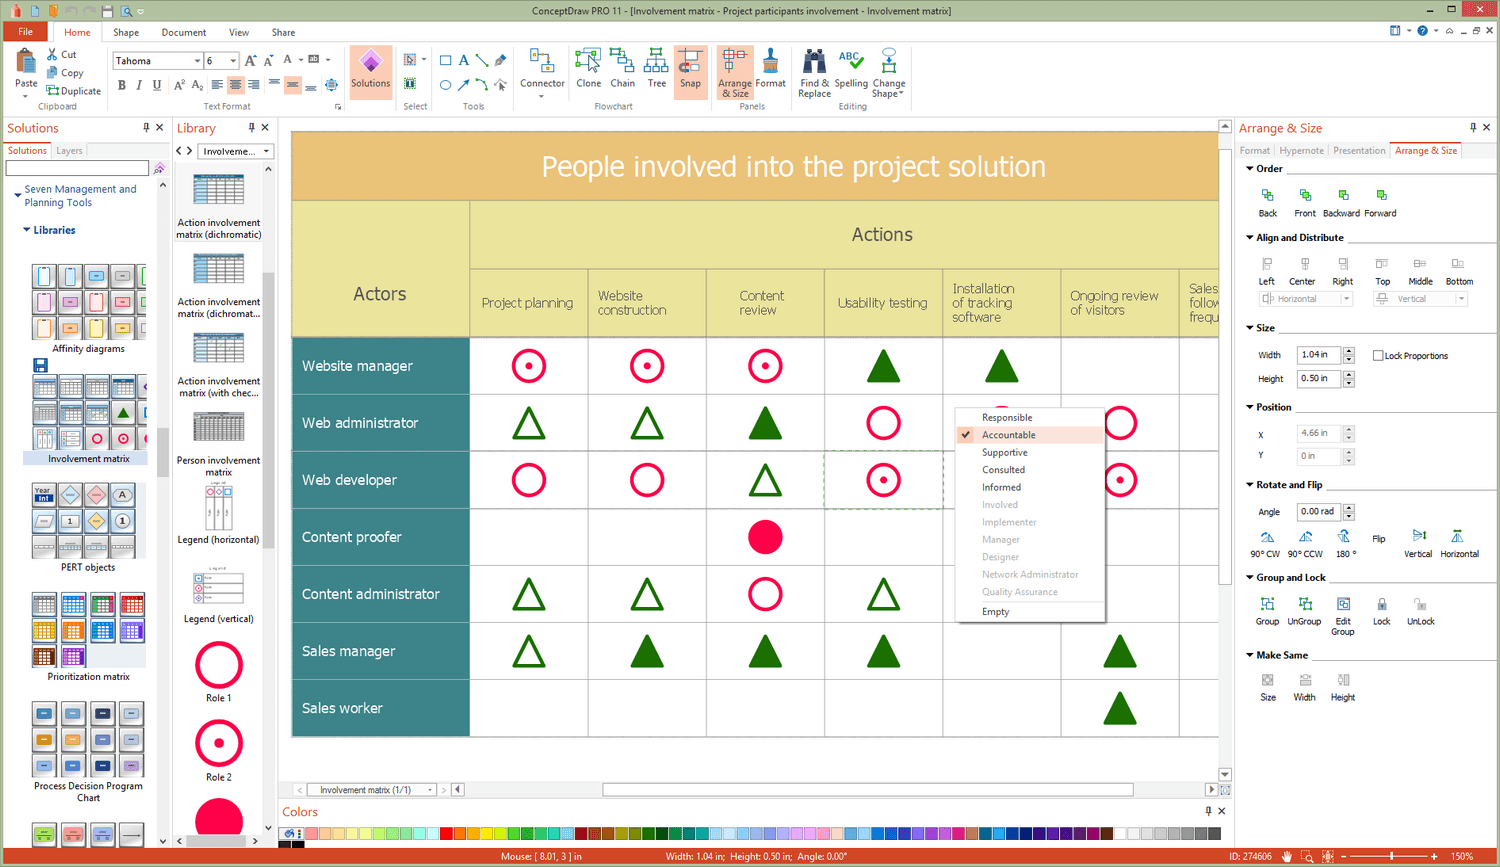 Seven Management and Planning Tools Solution for Microsoft Windows